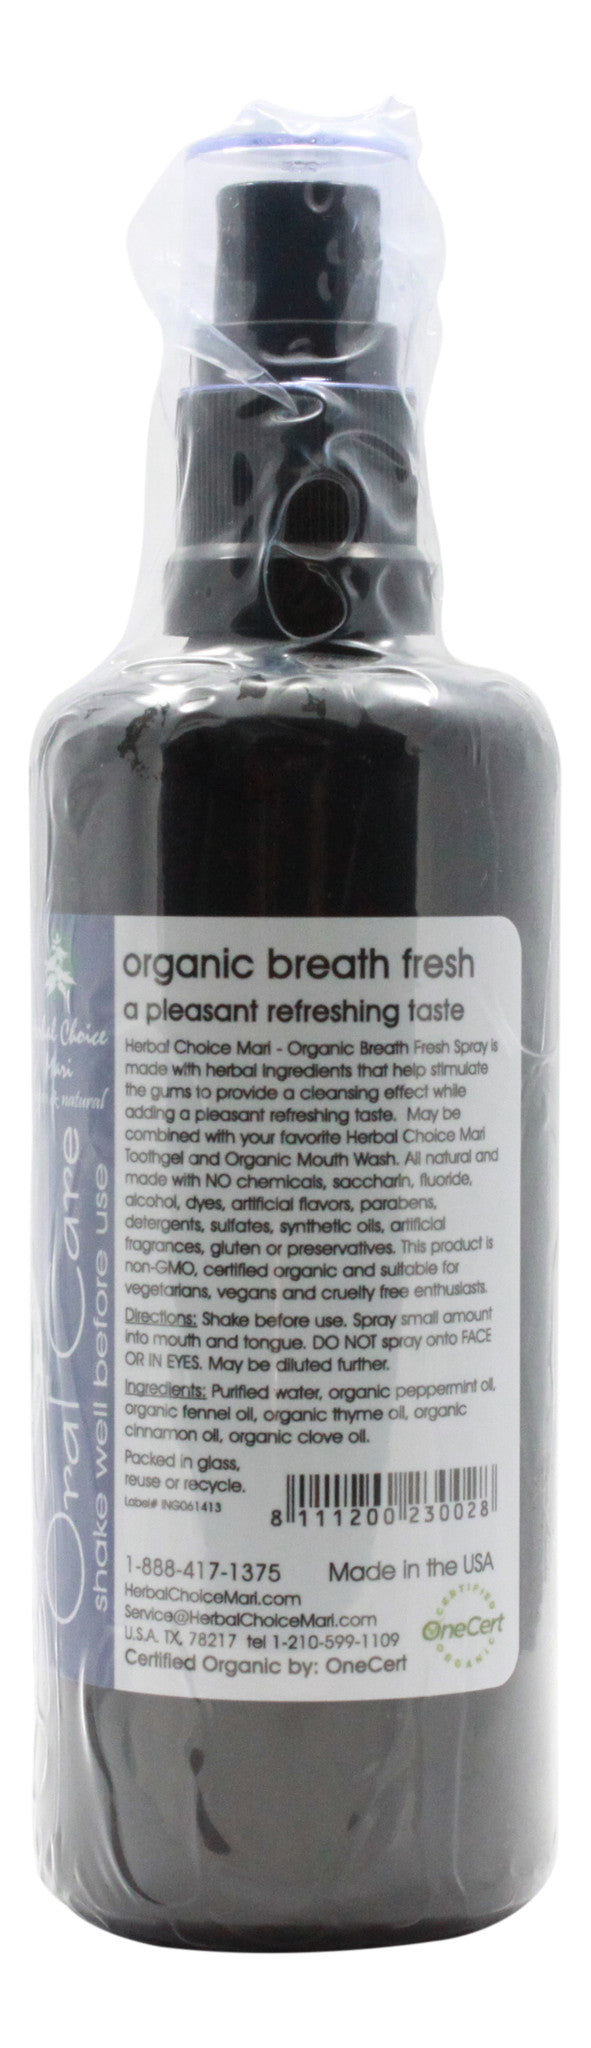 Organic Breath Fresh - Refreshing Taste - 3.4 oz Spray - Info